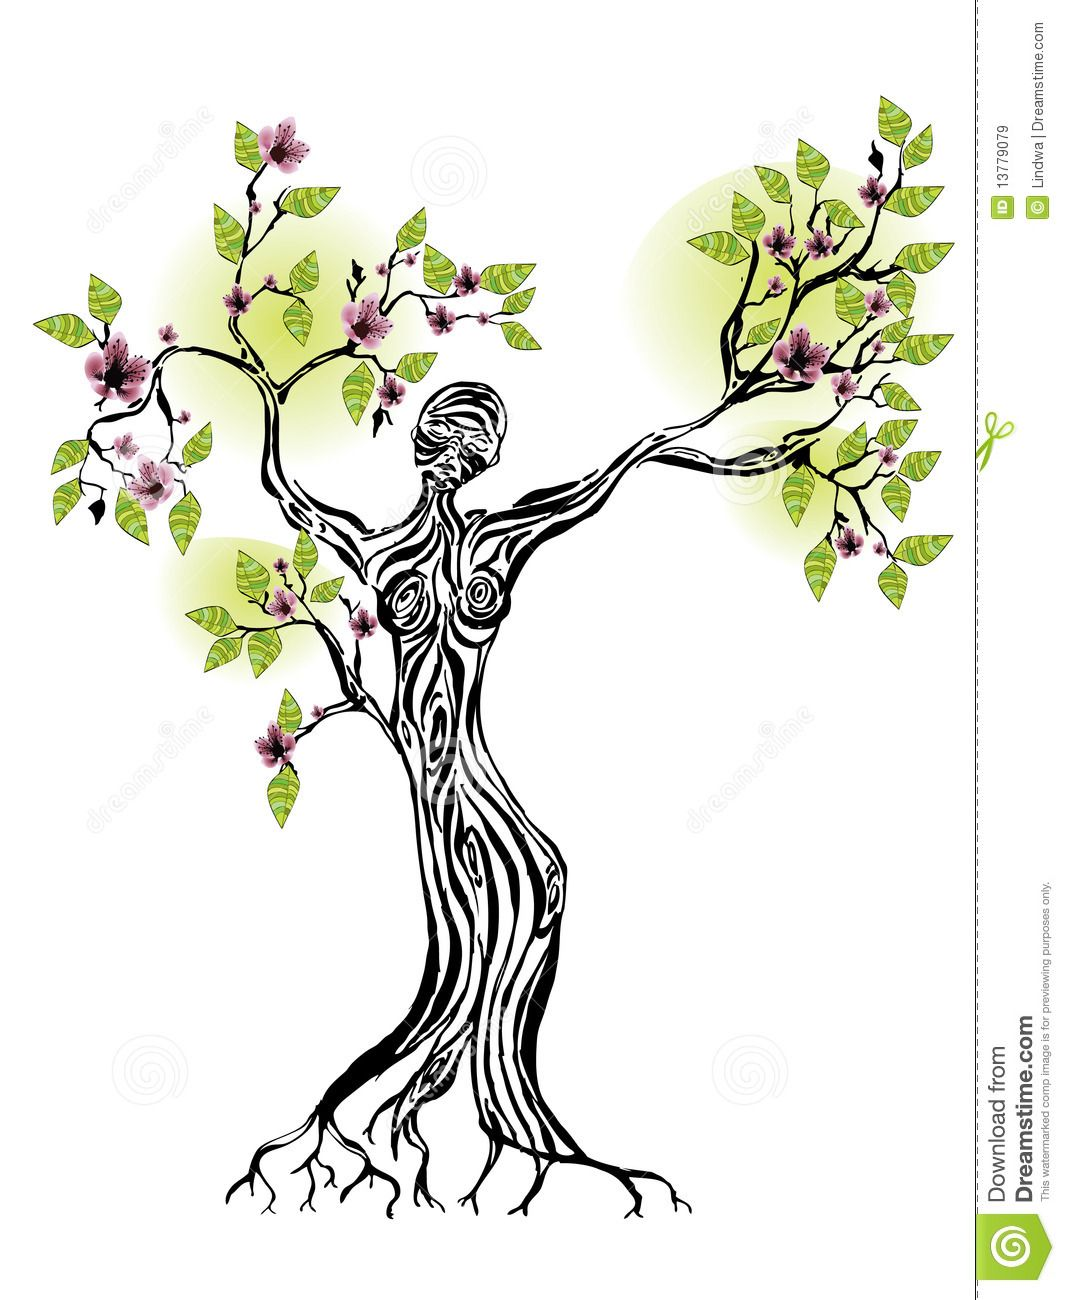 1065x1300 female silhouette tree of life spring tree with women silhouette